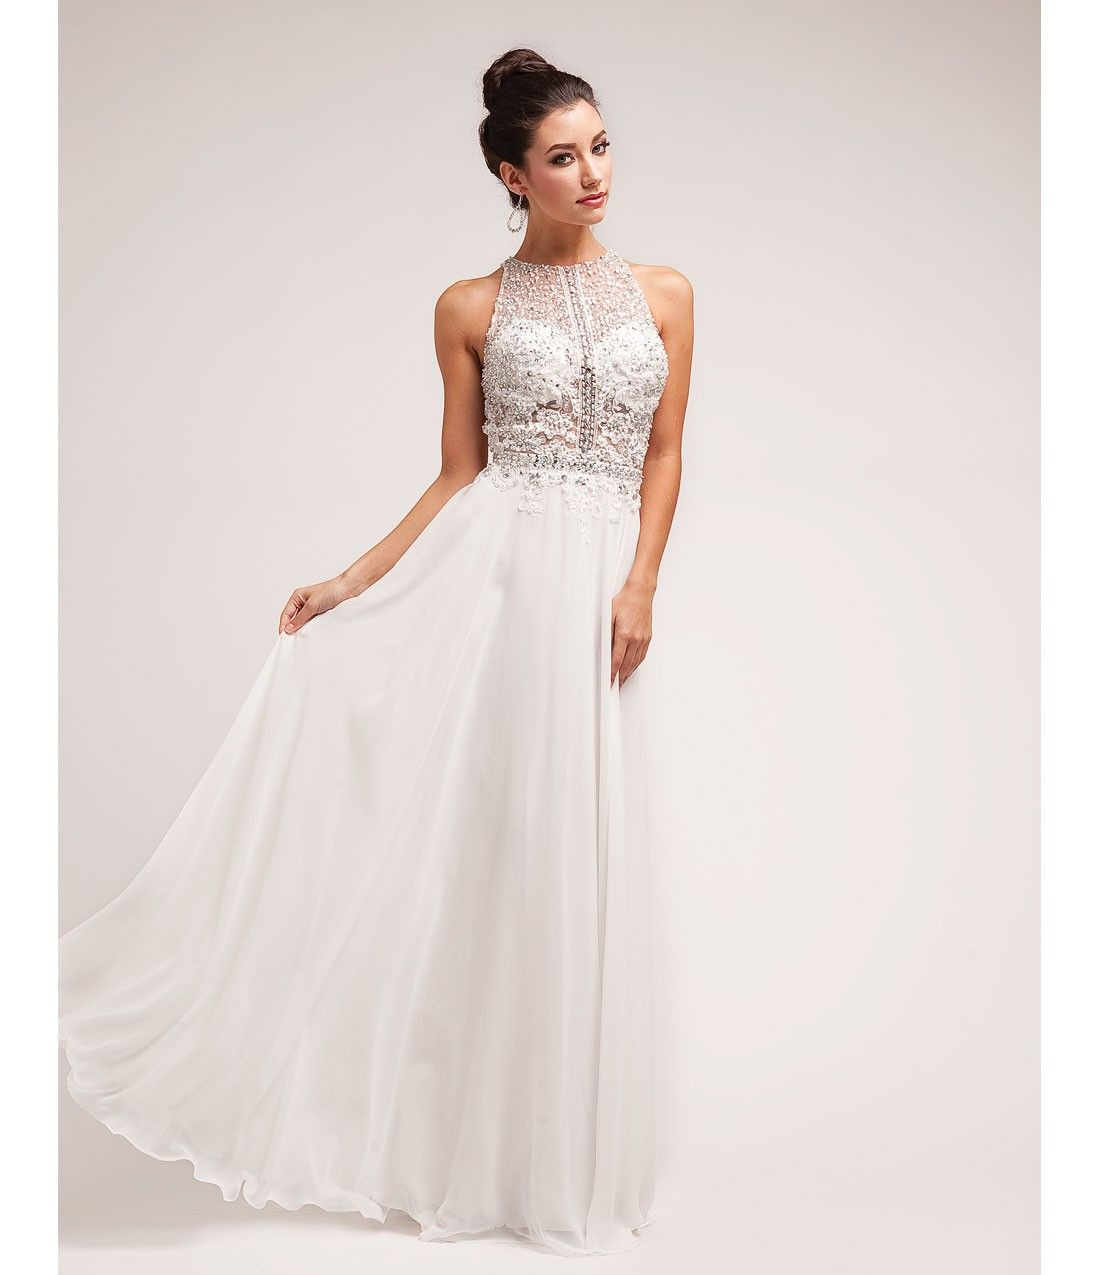 prom dresses off white beaded lace u chiffon halter gown